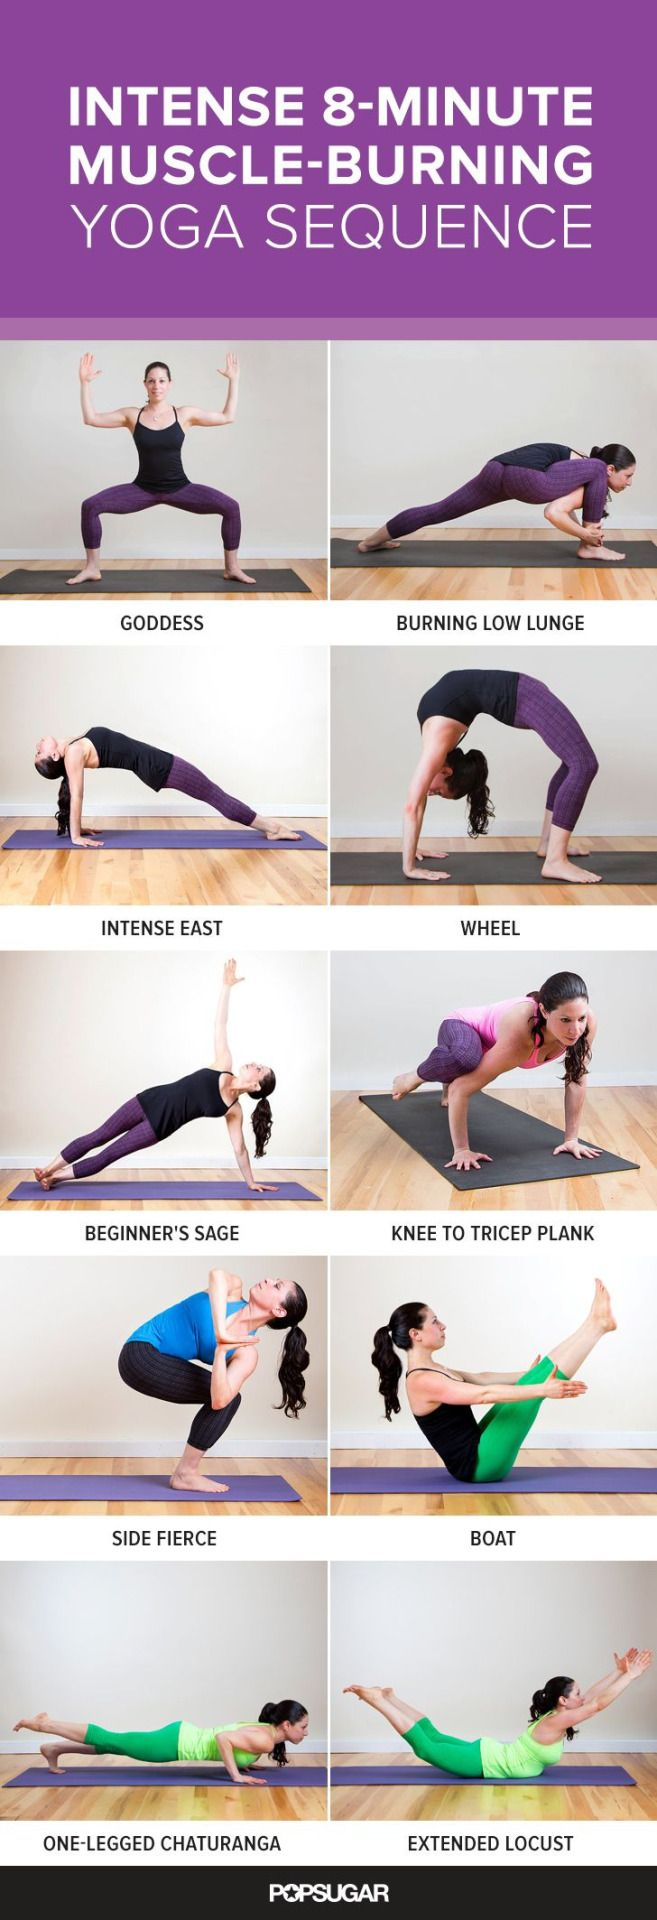 Research has proven that yoga improves brain function